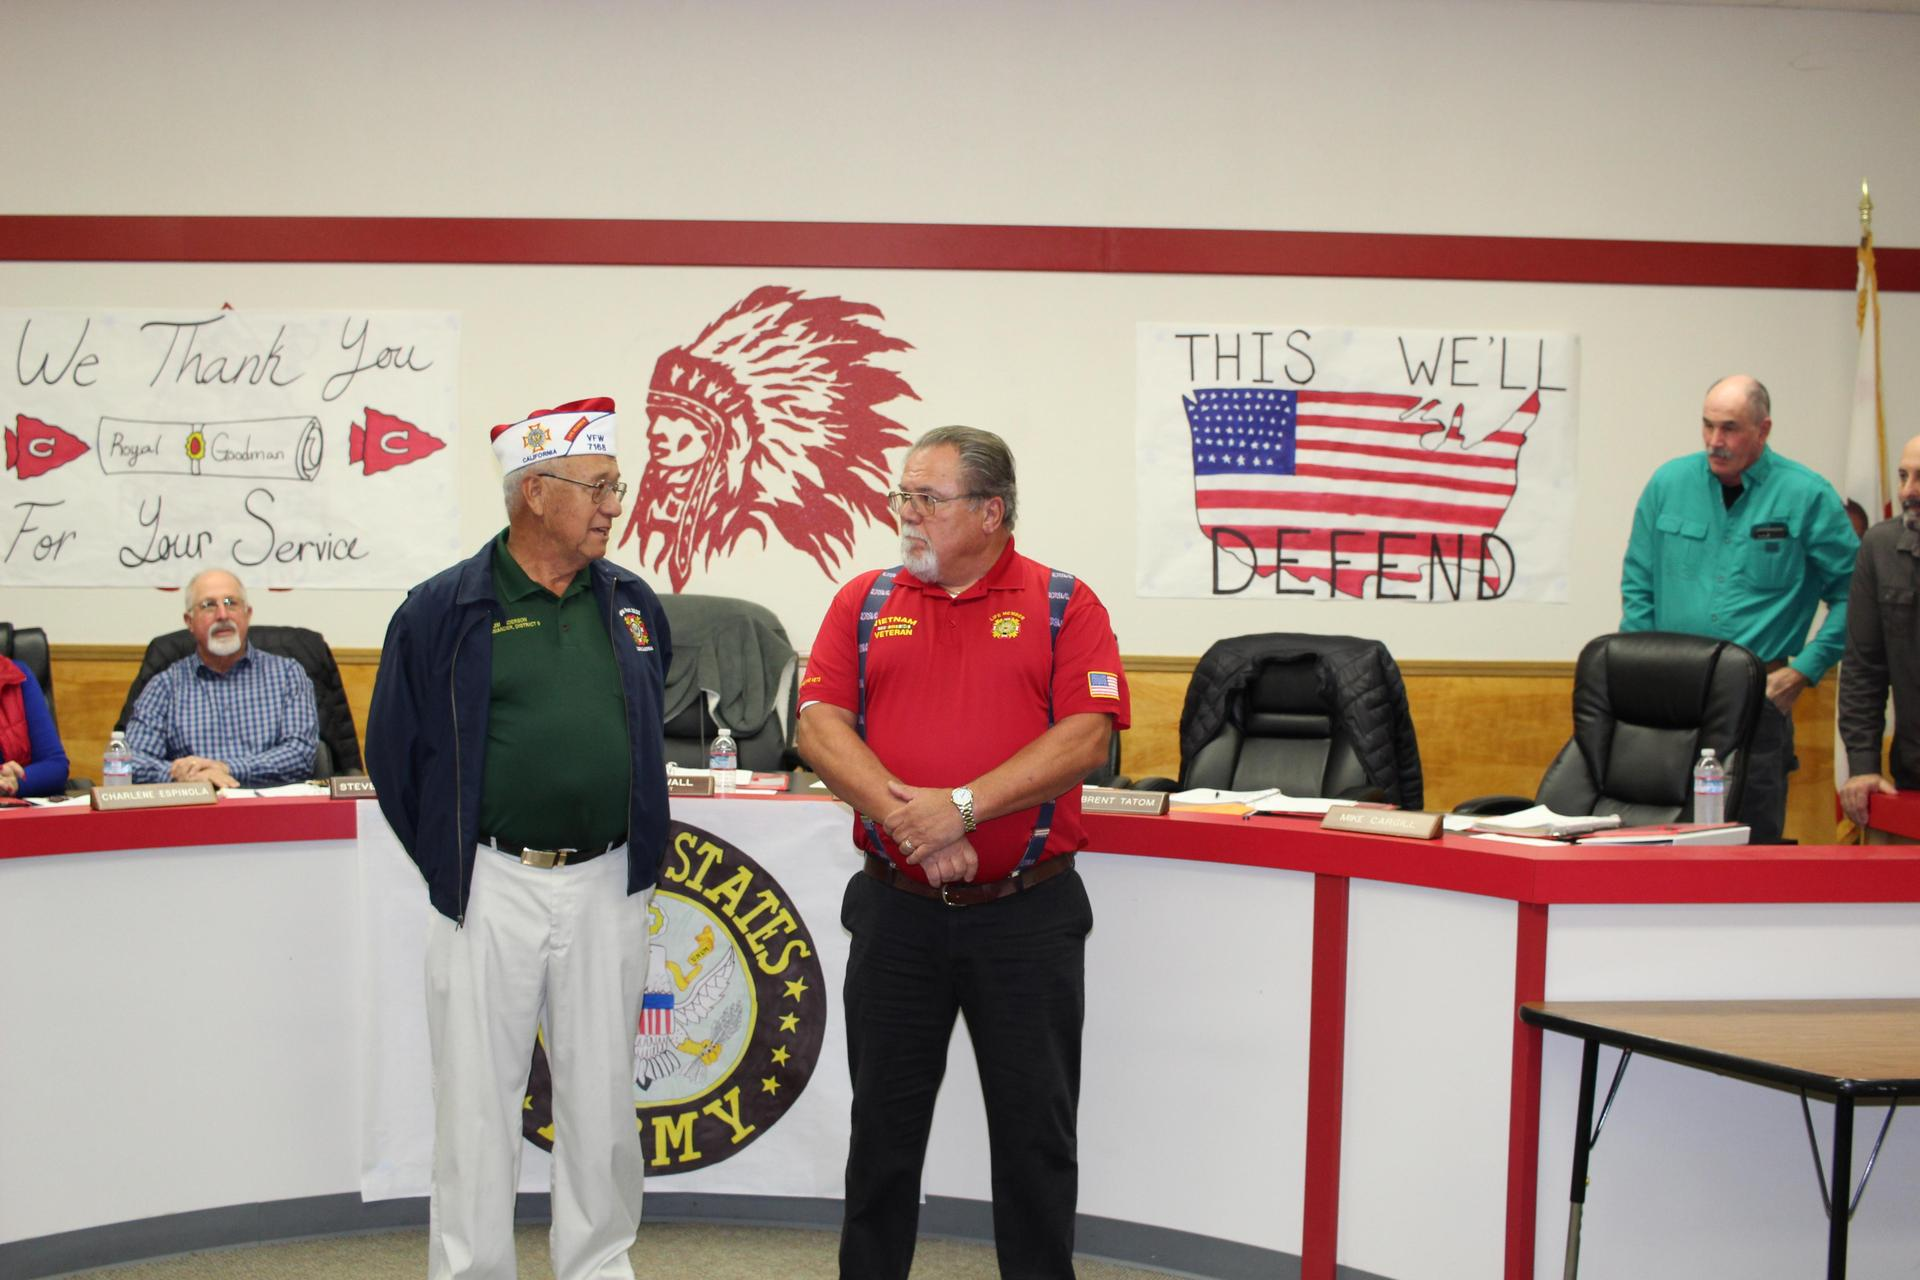 Royal Goodman is honored with words from a member of his VFW Post.